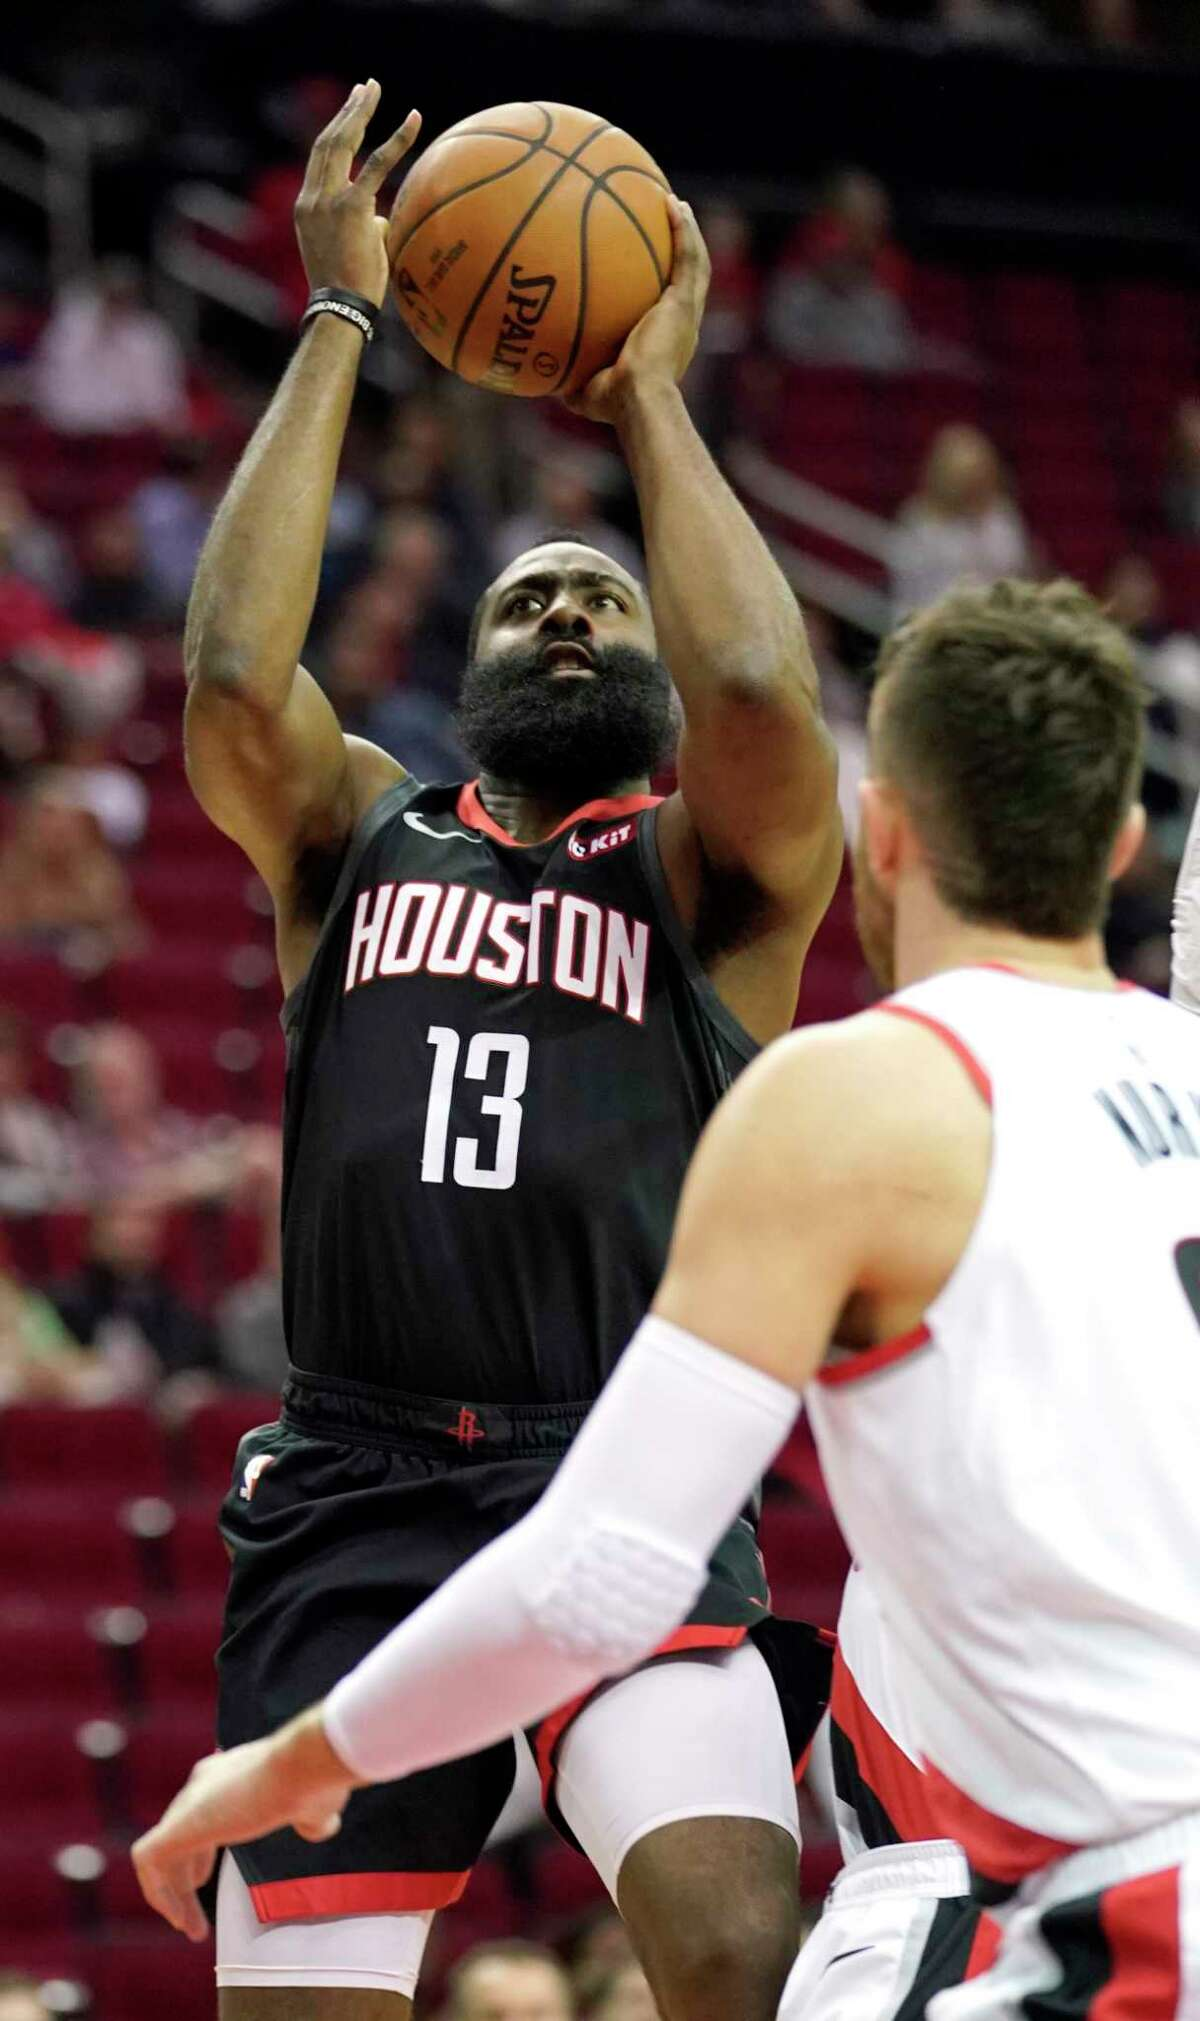 Houston Rockets' James Harden (13) shoots against the Portland Trail Blazers during the first half of an NBA basketball game Tuesday, Dec. 11, 2018, in Houston. (AP Photo/David J. Phillip)